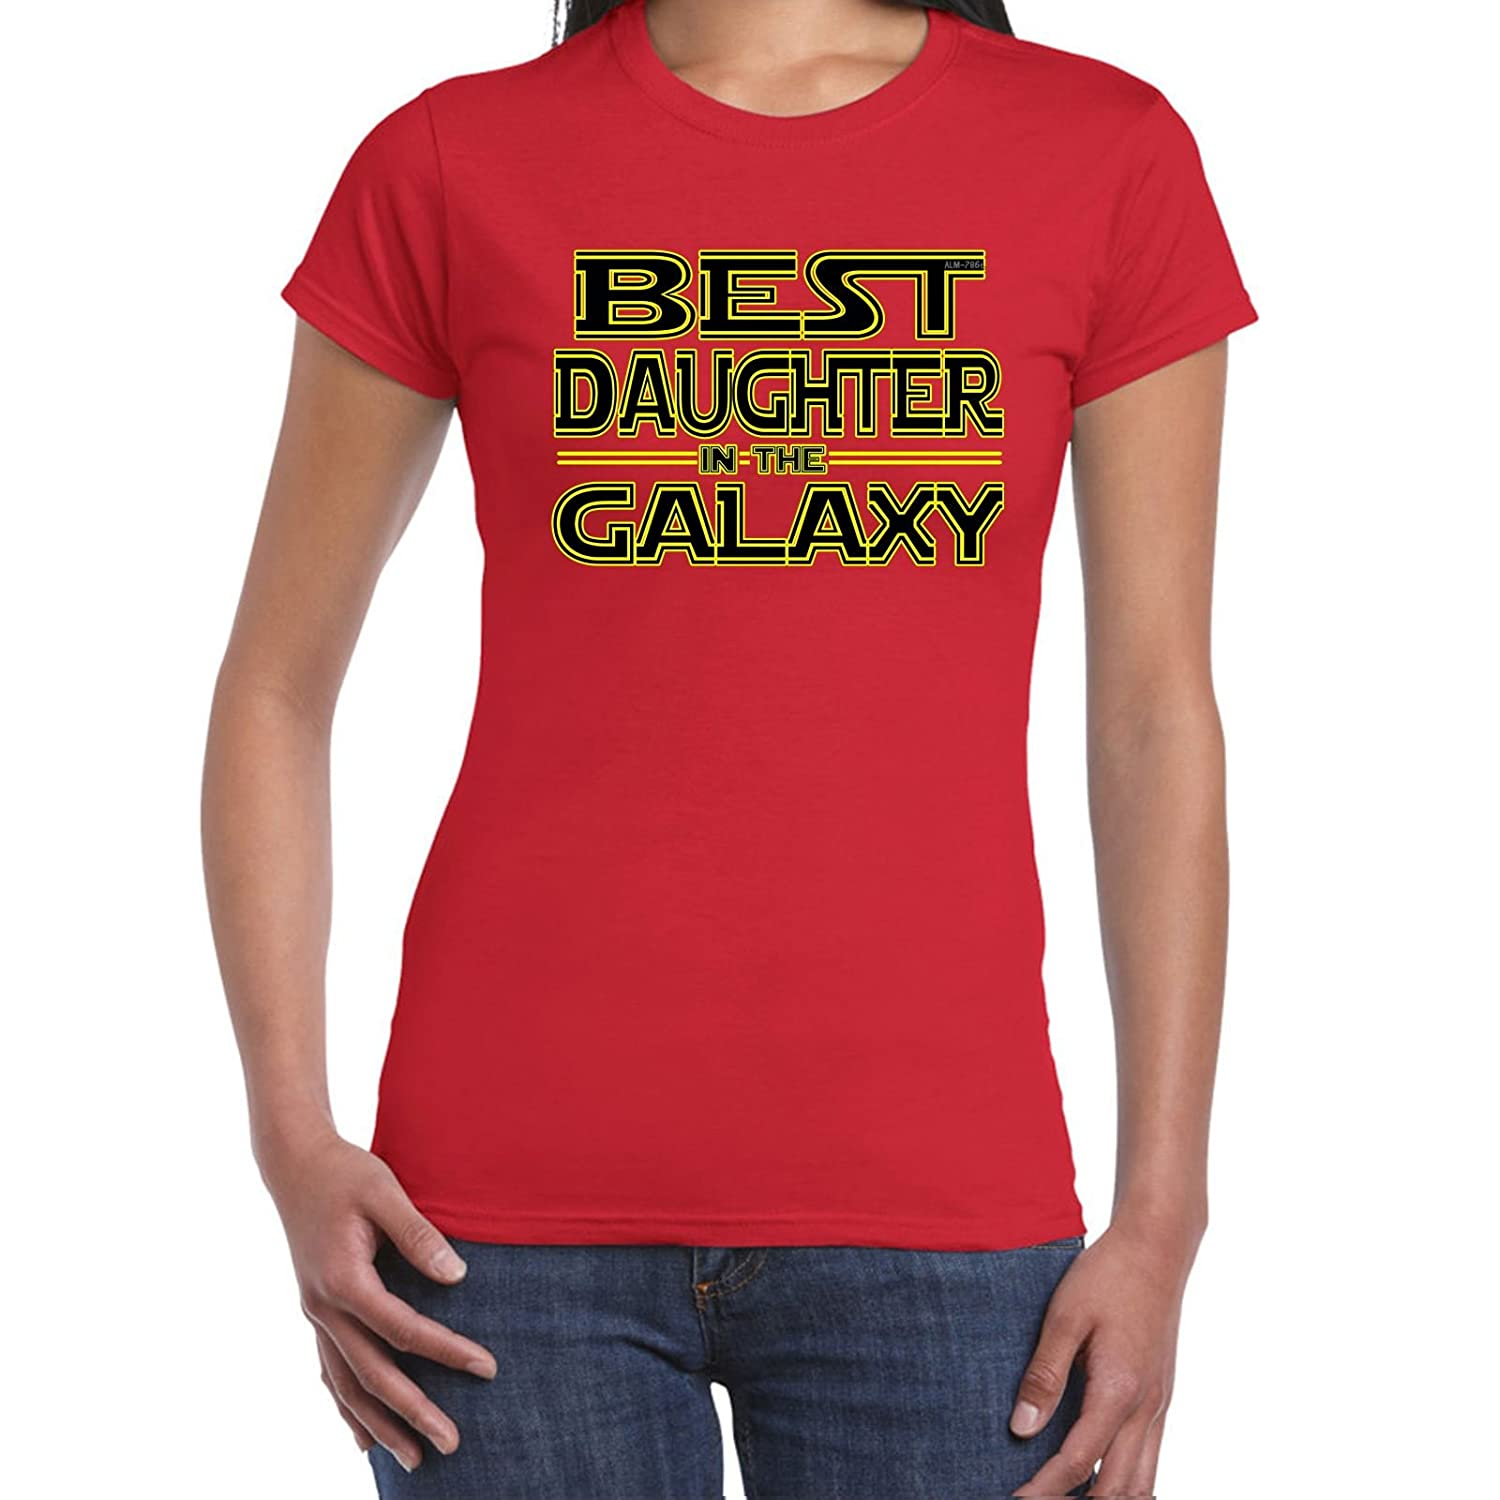 Womens Funny T Shirts-Best Daughter in Galaxy Star Wars Inspired-tshirt ALM-786t